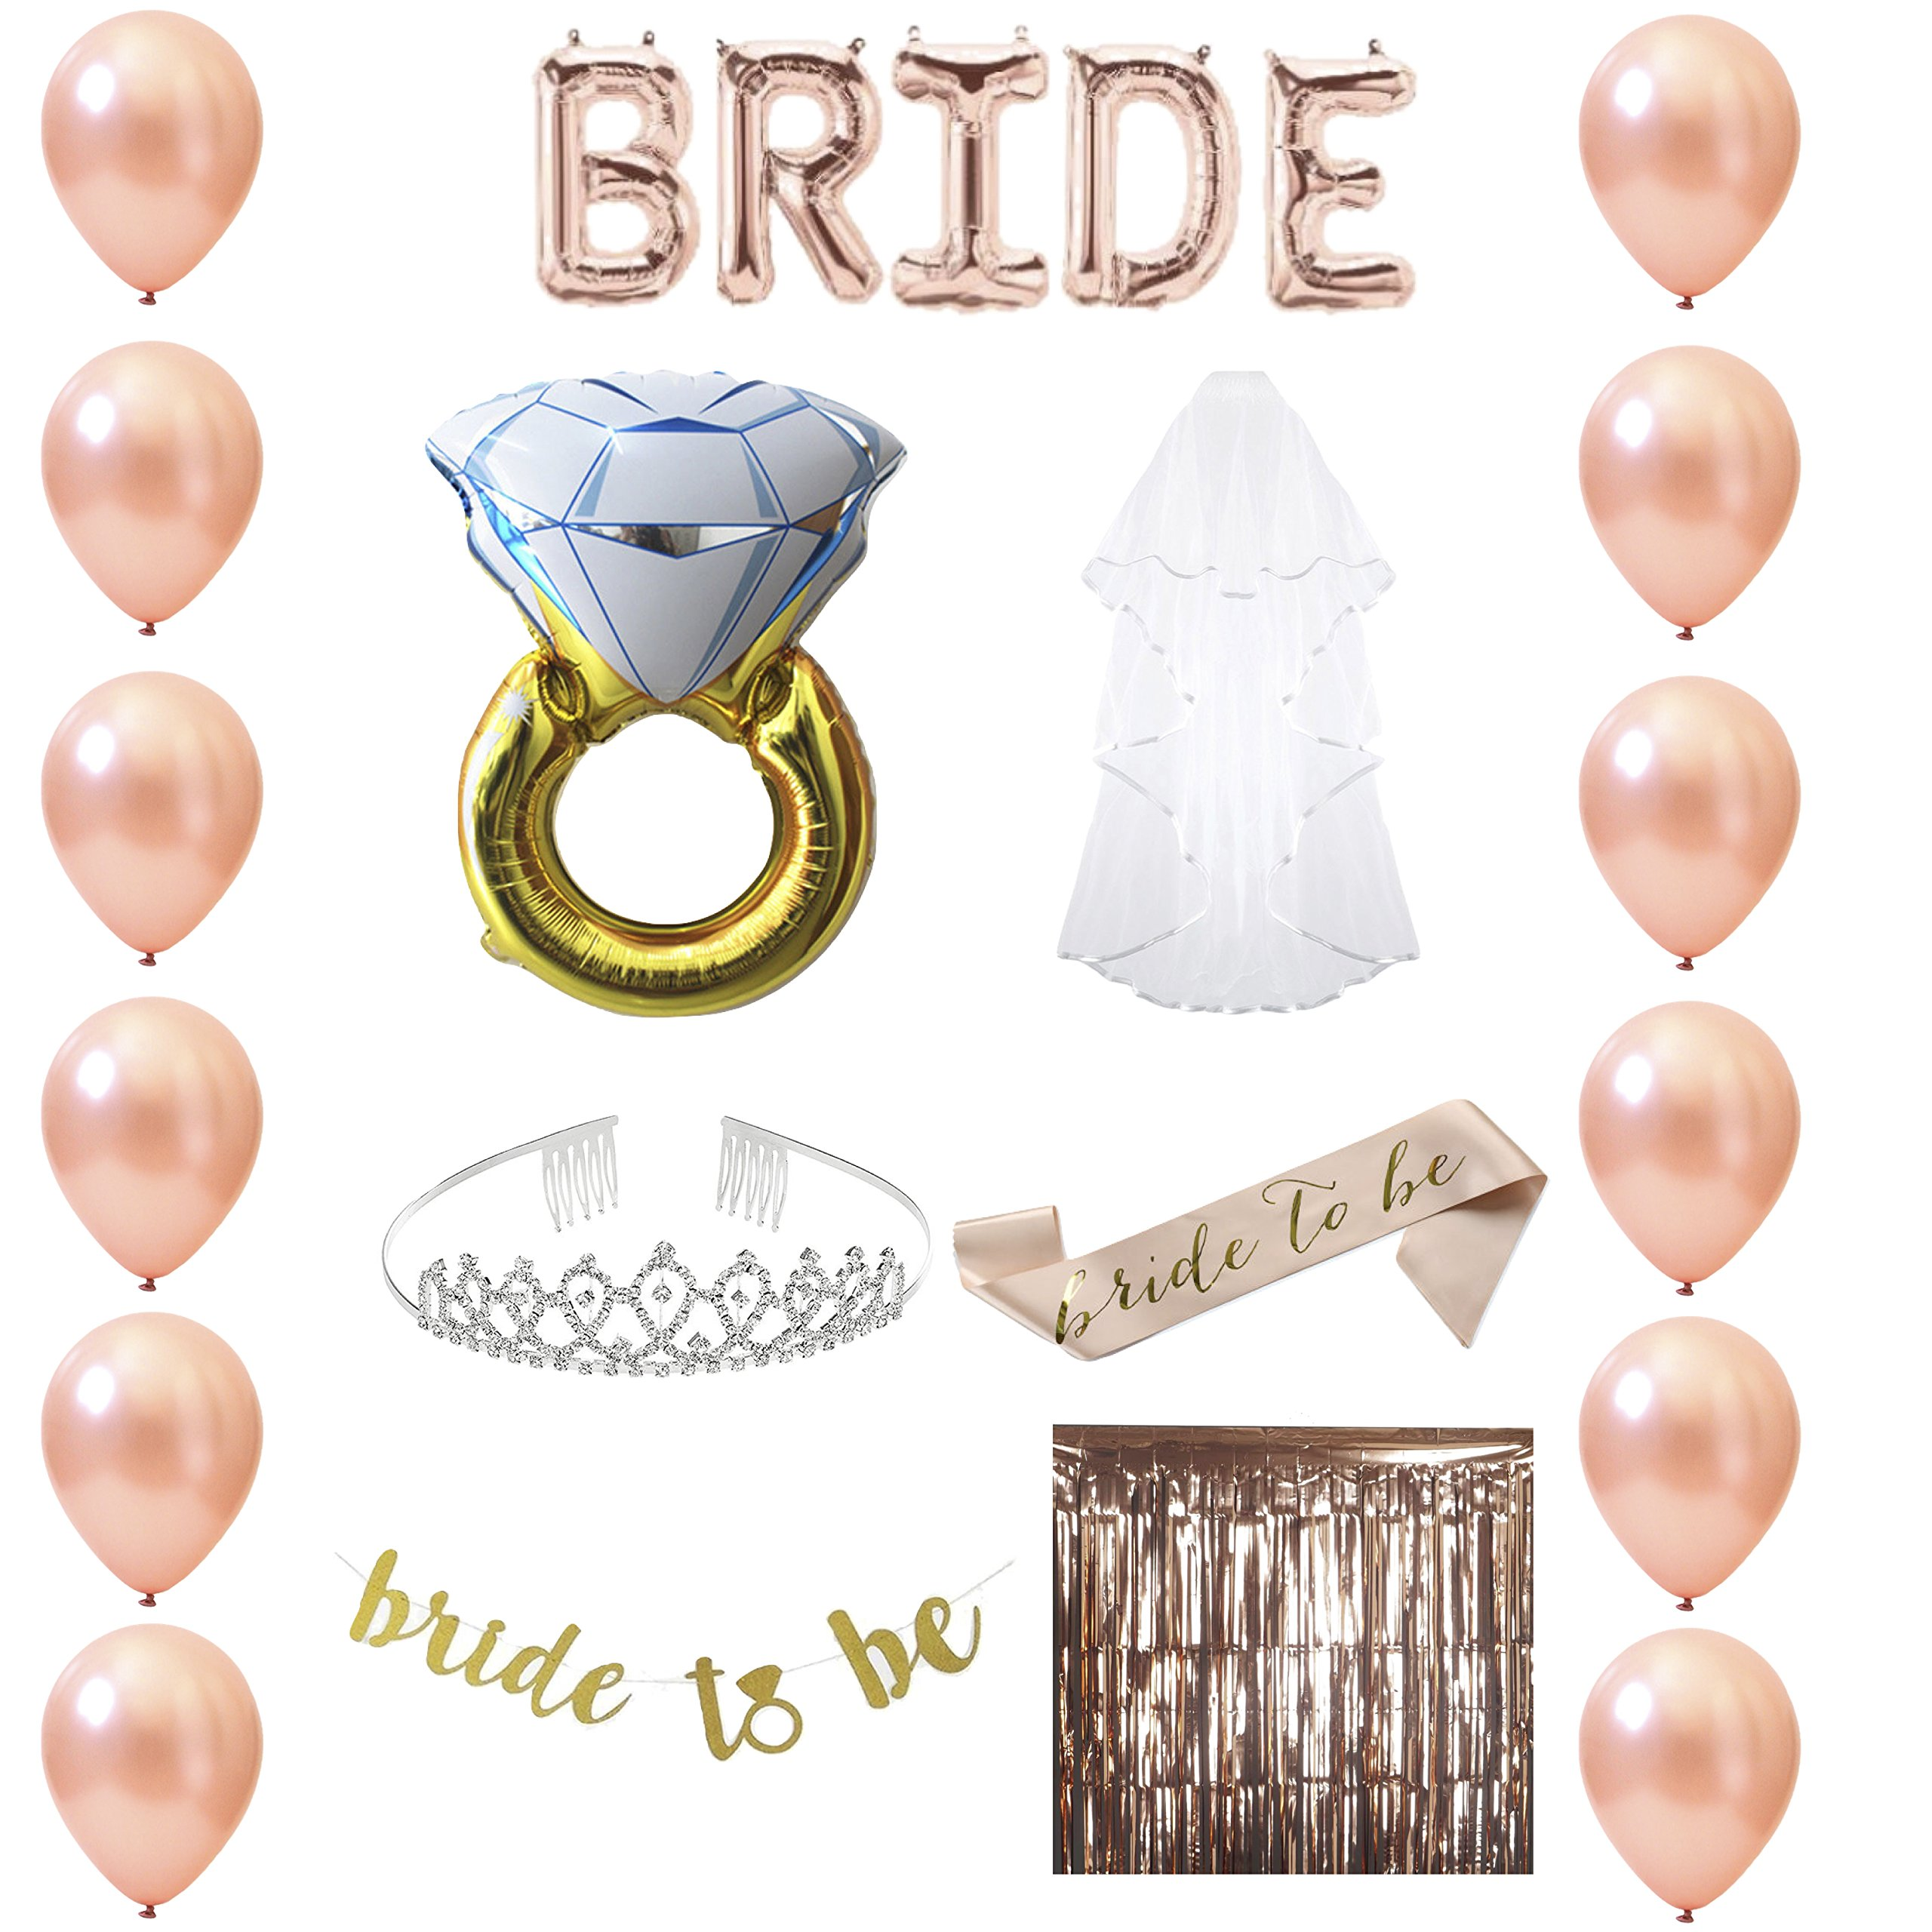 Bachelorette Party Supplies Rose Gold Set - Bridal Shower Decorations, and Favors Kit with Balloons, Tiara, Veil, Sash, Banner, Ring and Photo Booth Background.